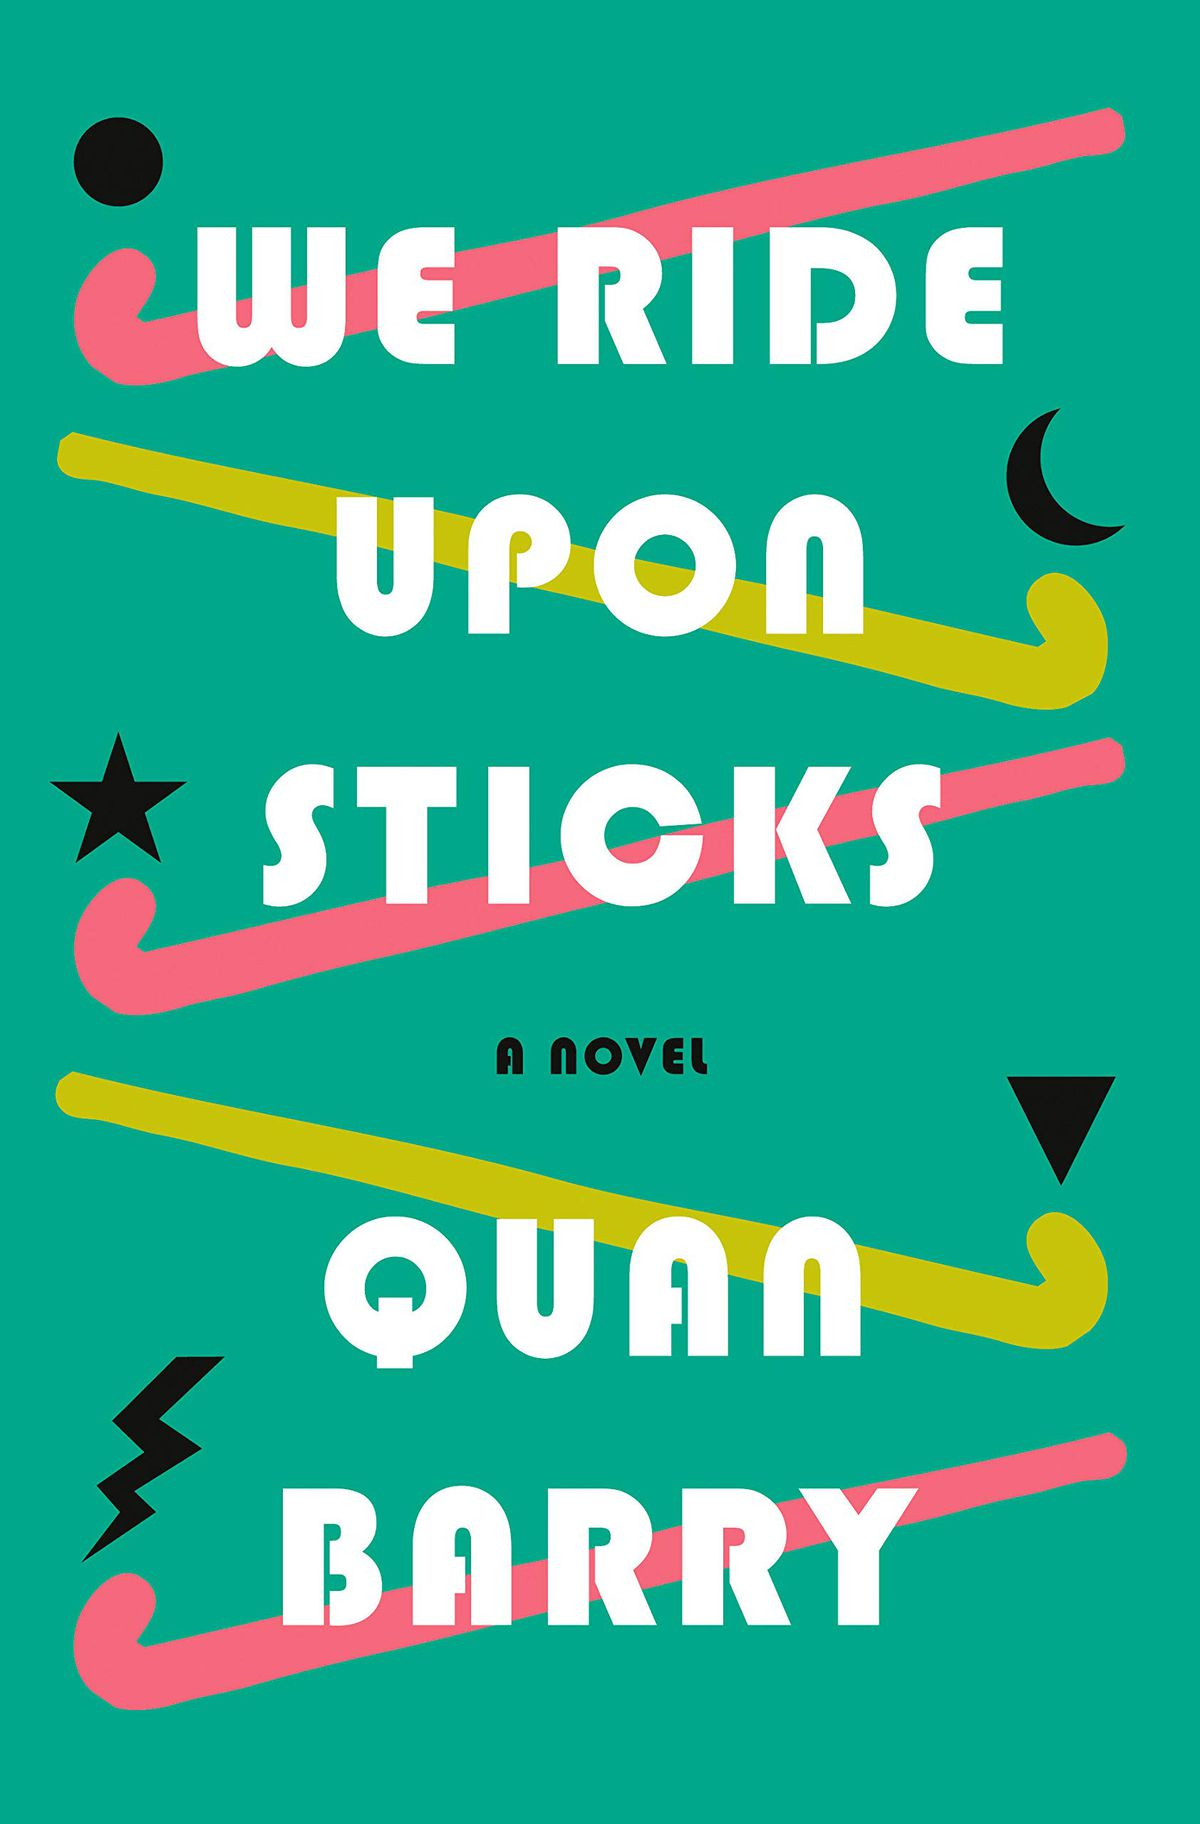 The cover of the novel We Ride Upon Sticks by Quan Barry.